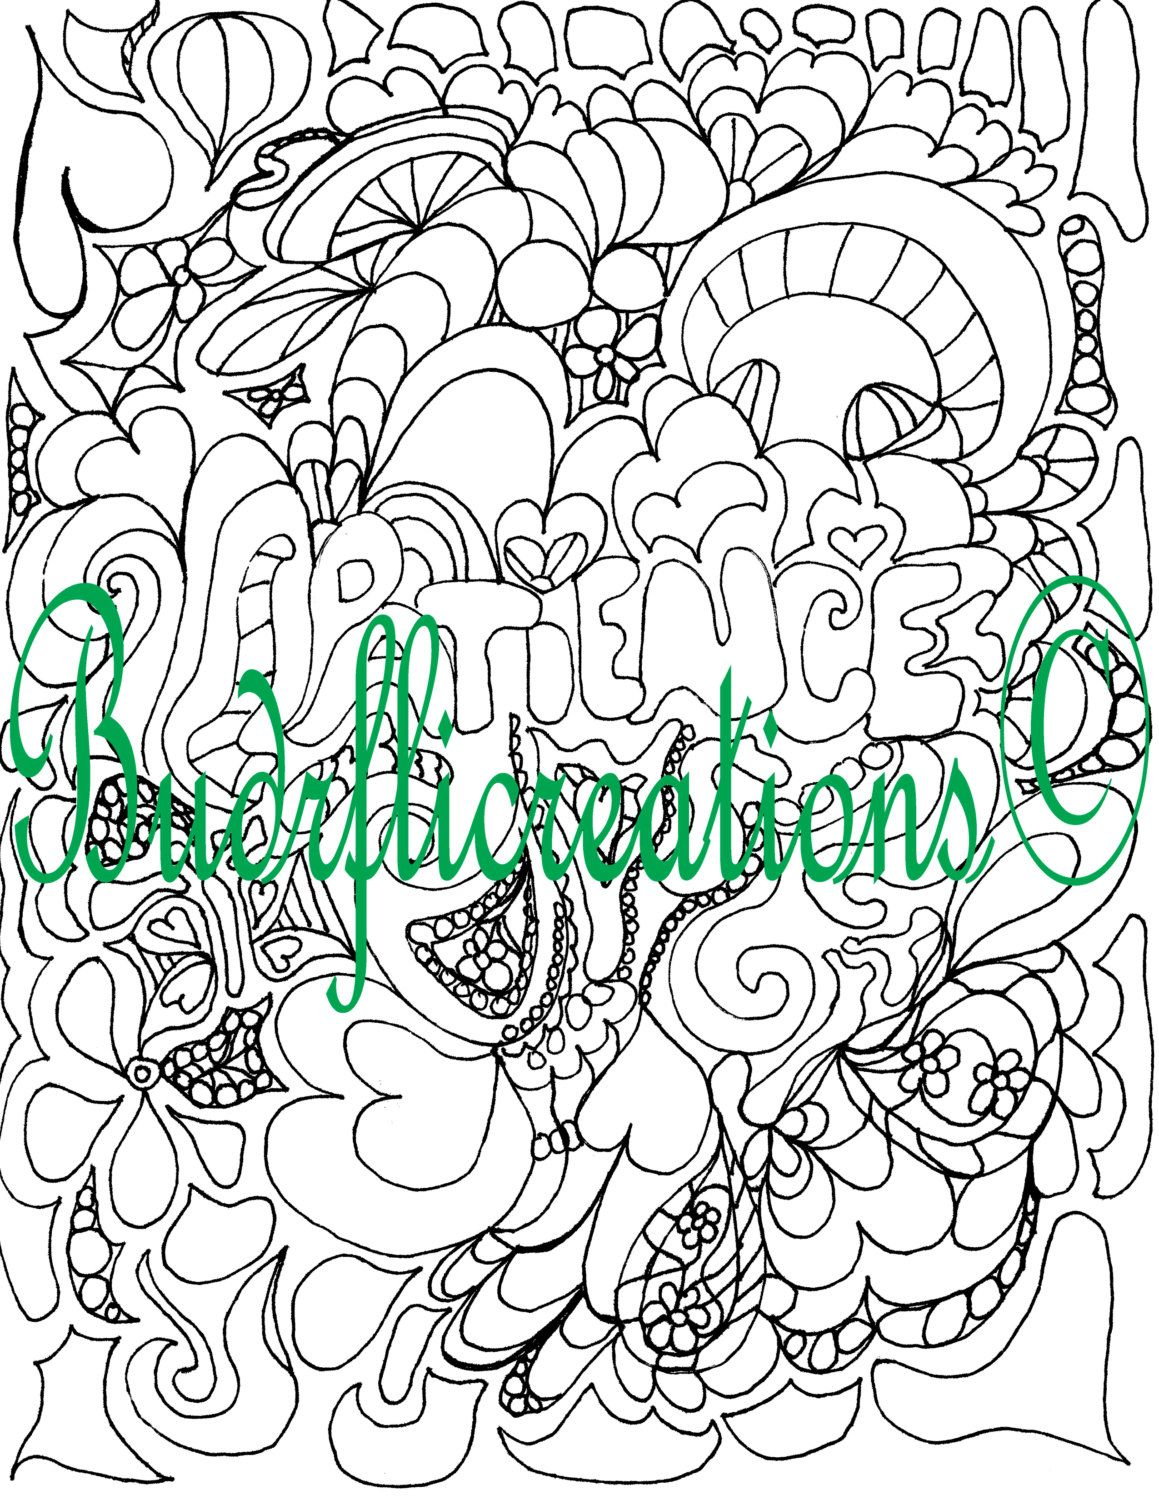 Patience Adult Coloring Page Instant Downloadable Image Fruits Of